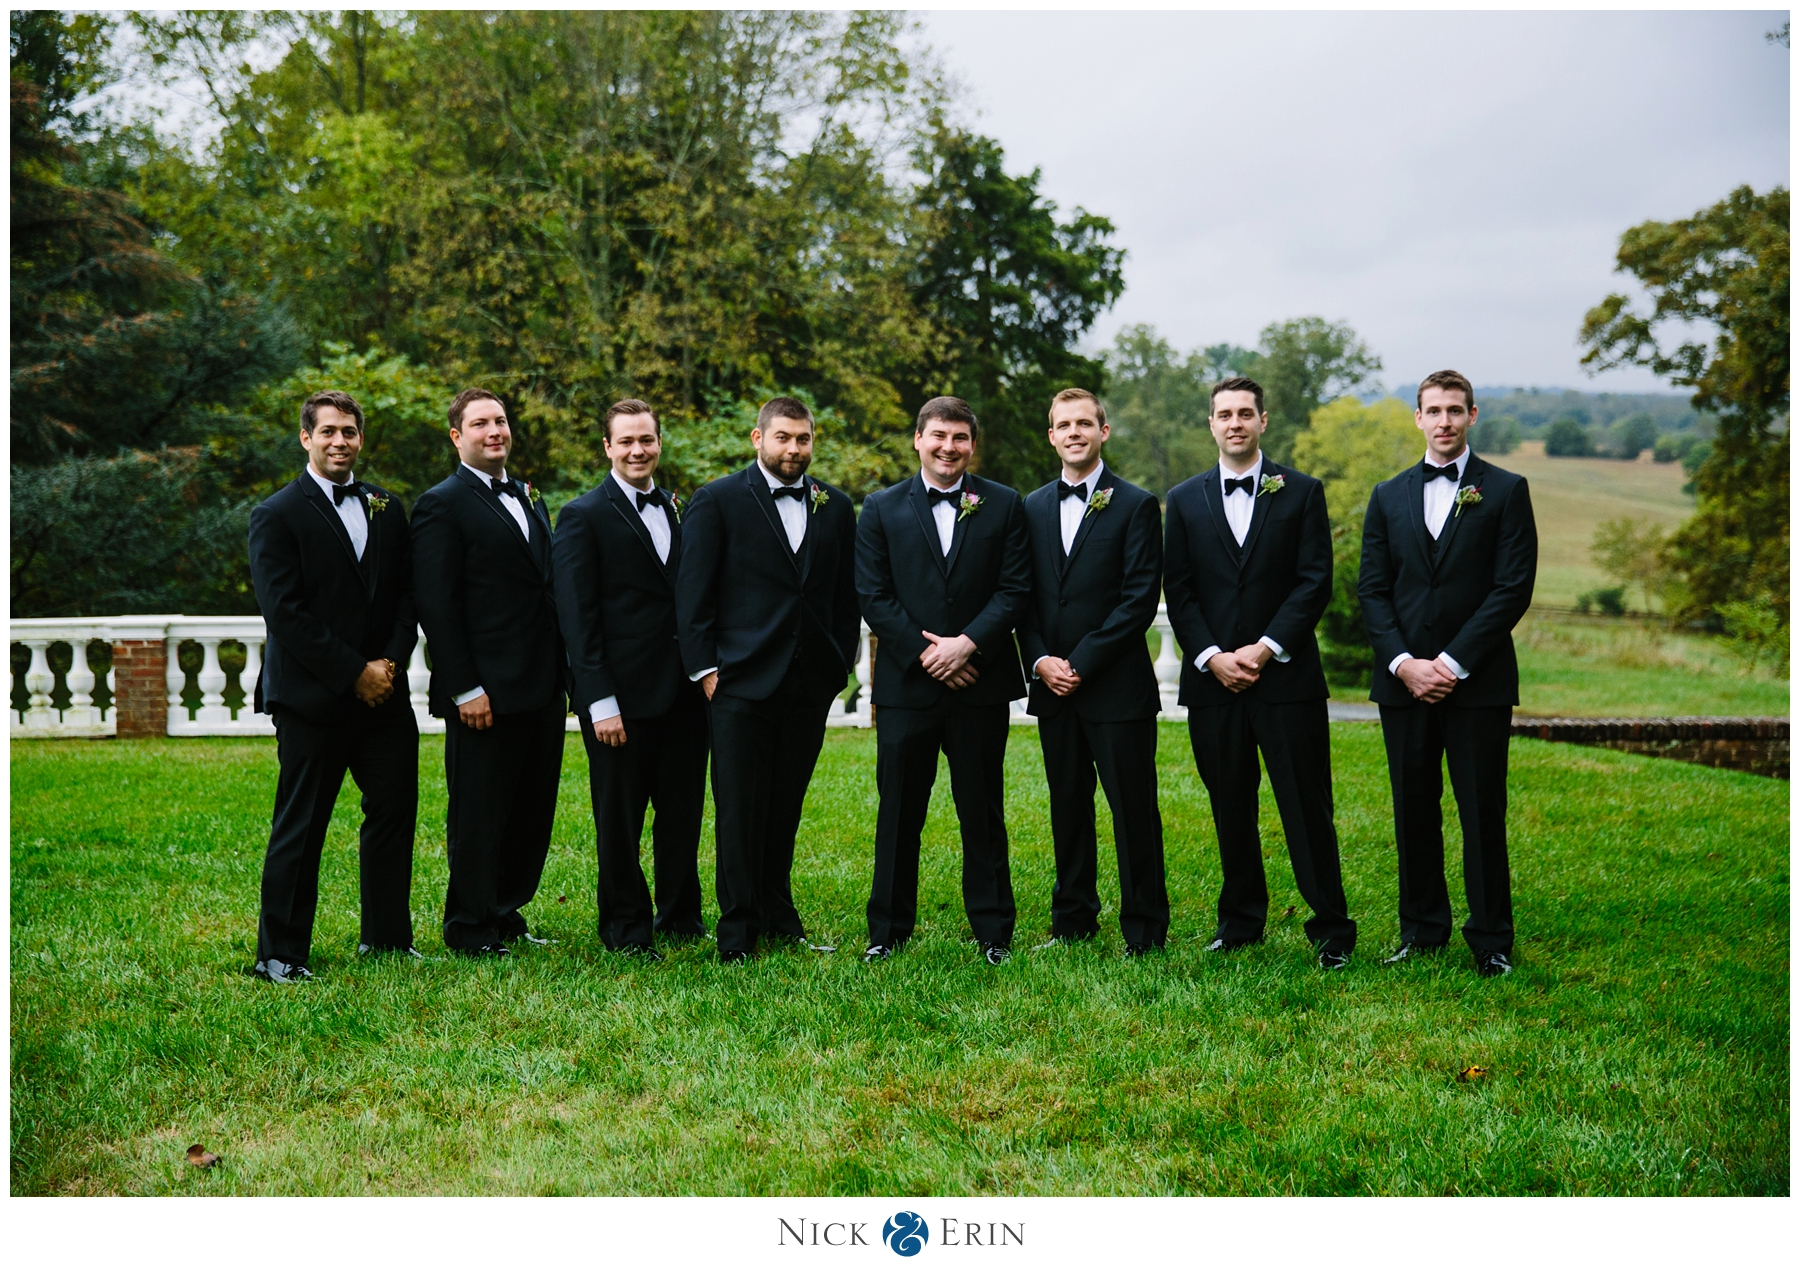 donner_photography_leesburg-virginia-wedding_erin-stuart_0004